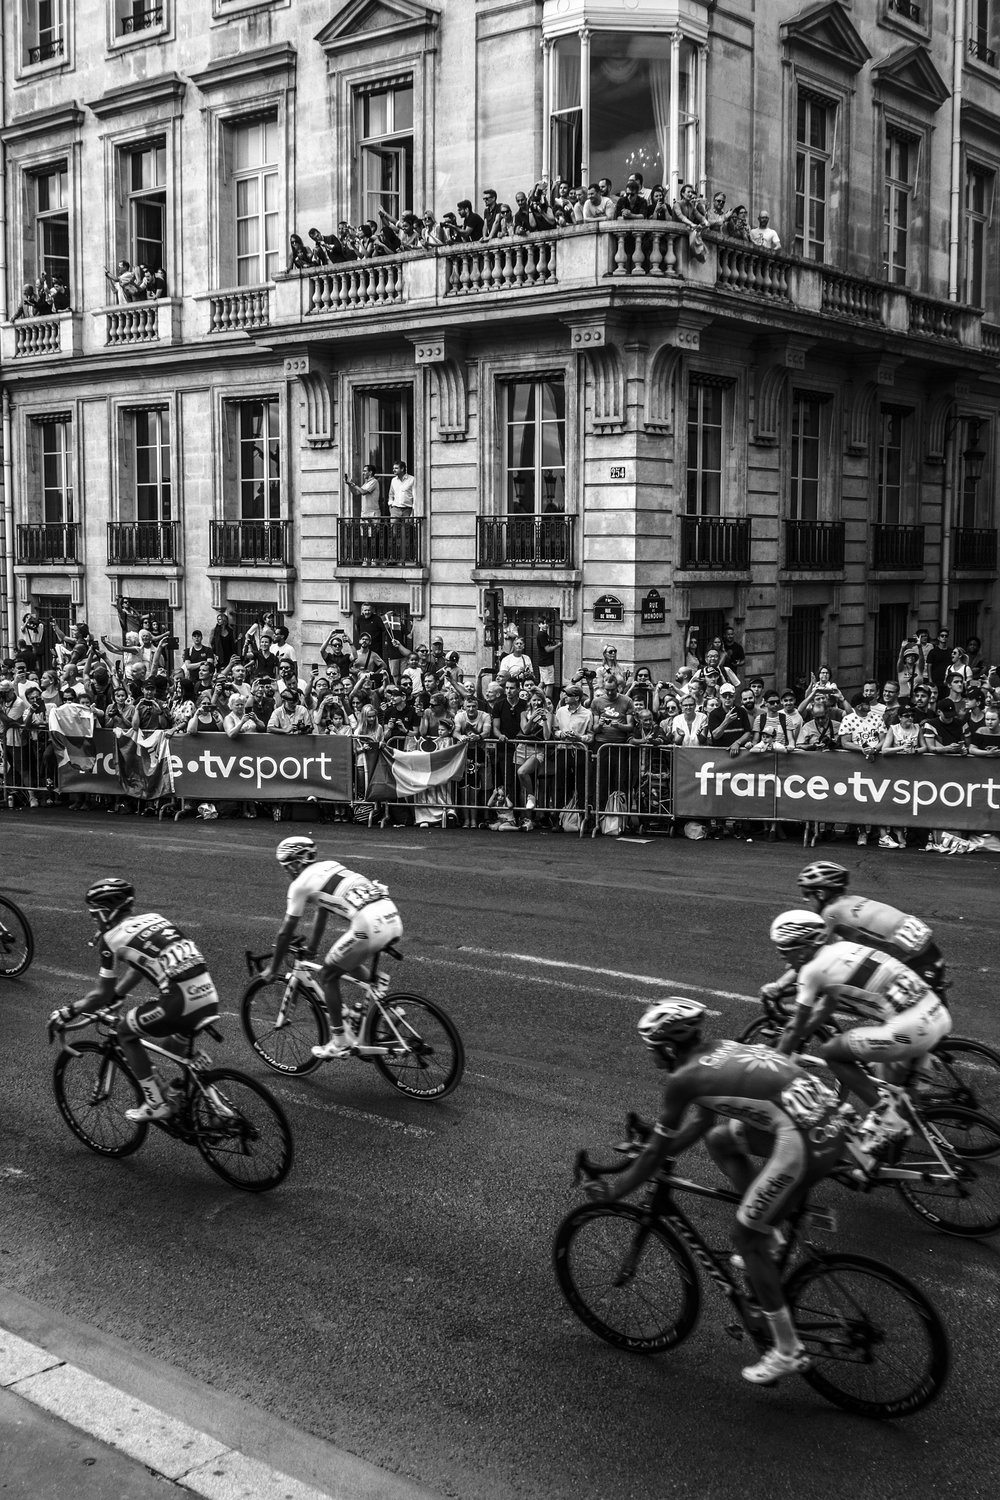 Tour de France, rue de Rivoli, 2018.